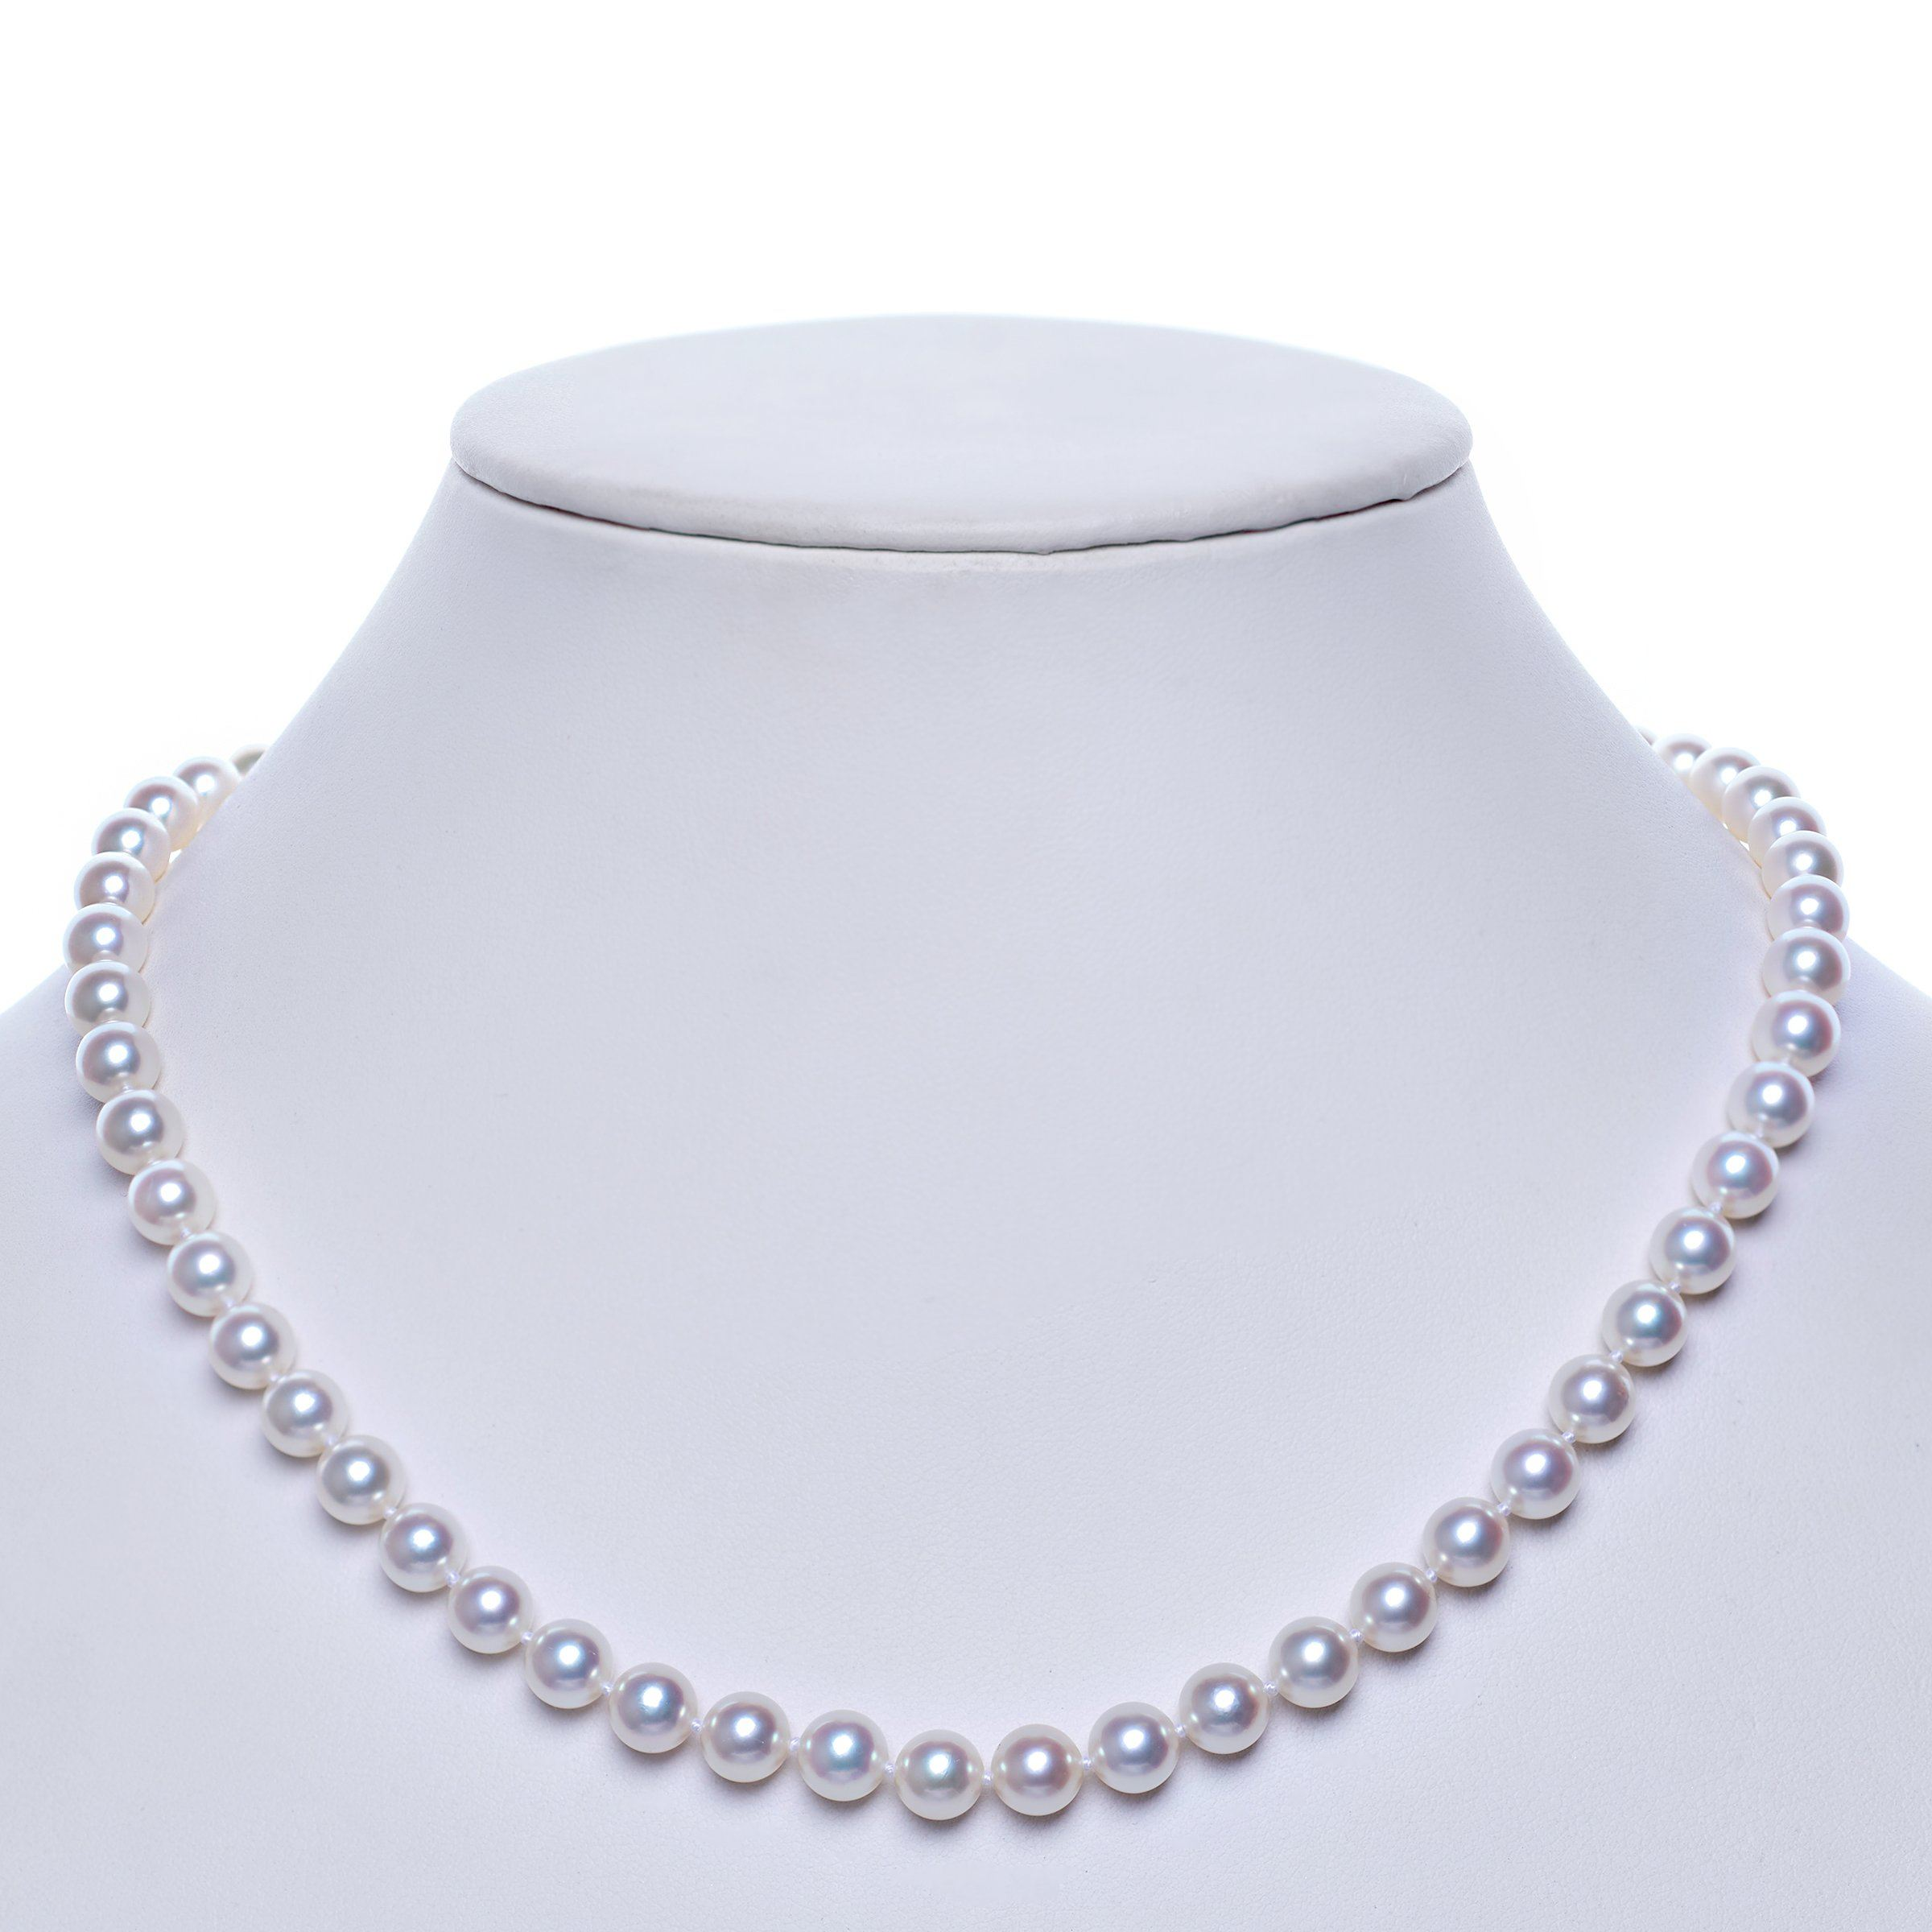 7.5-8.0 mm 16 Inch Natural White Hanadama Akoya Pearl Necklace